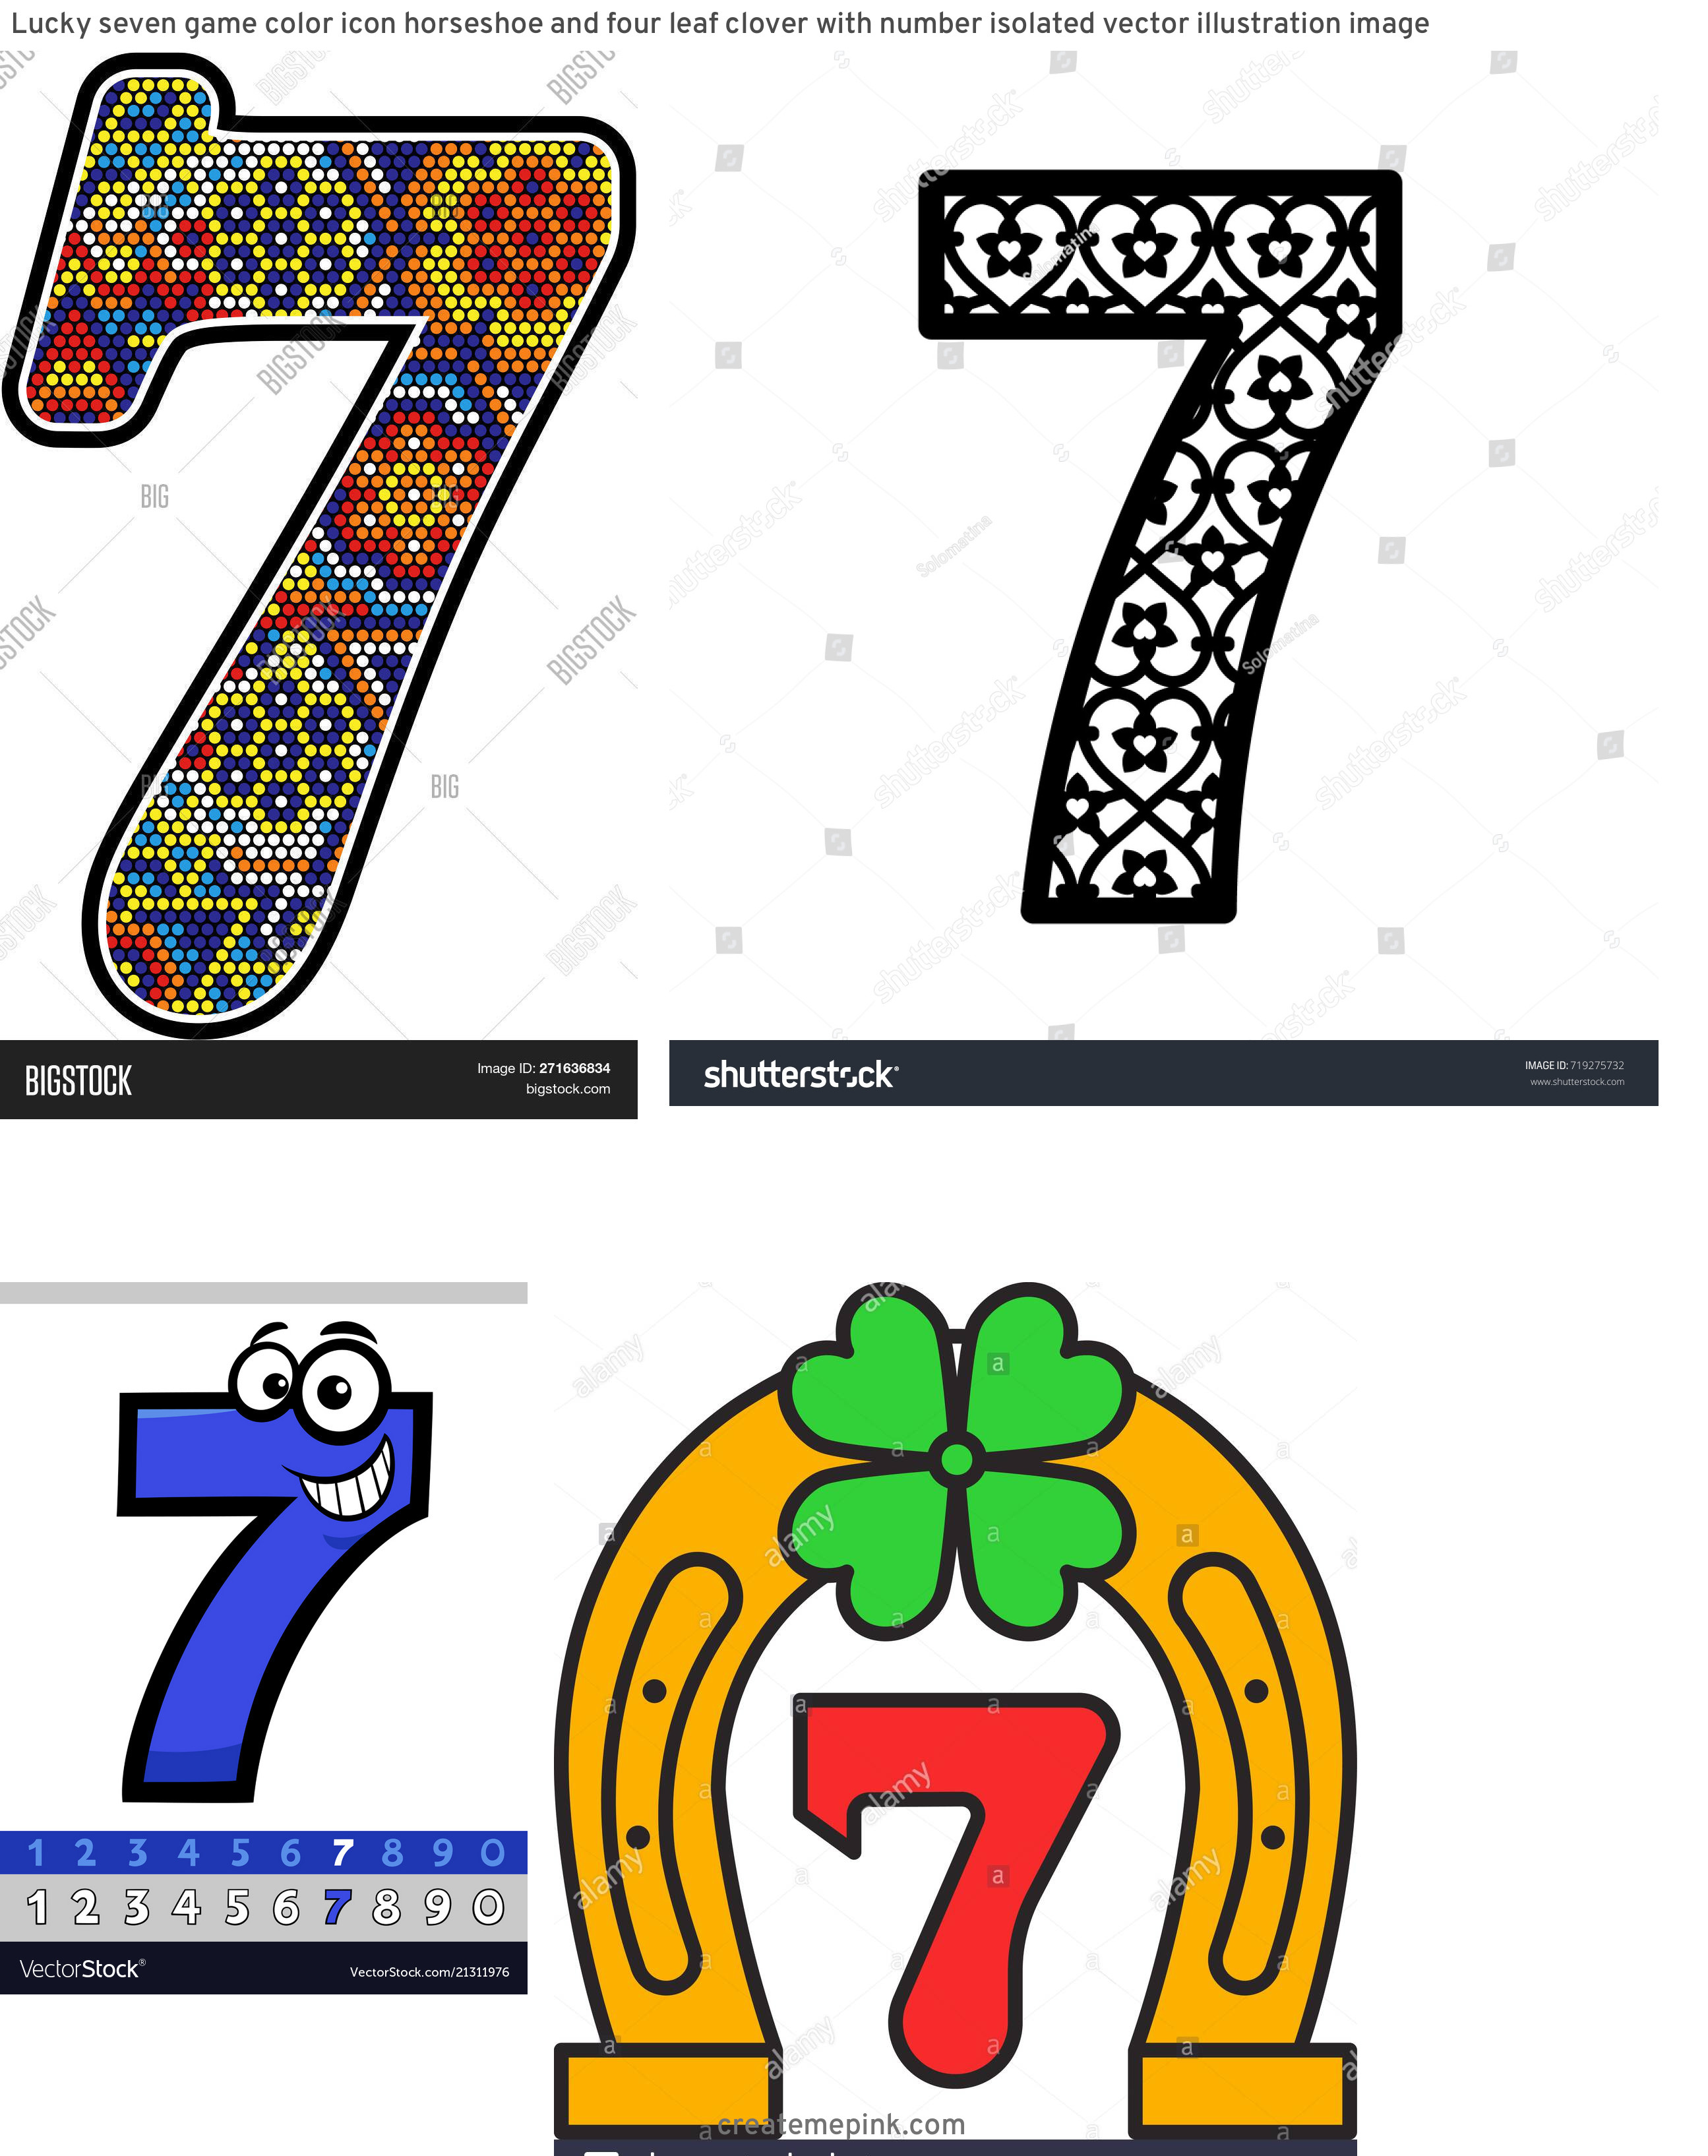 Stock Vector Number 7 Clip Art: Lucky Seven Game Color Icon Horseshoe And Four Leaf Clover With Number Isolated Vector Illustration Image